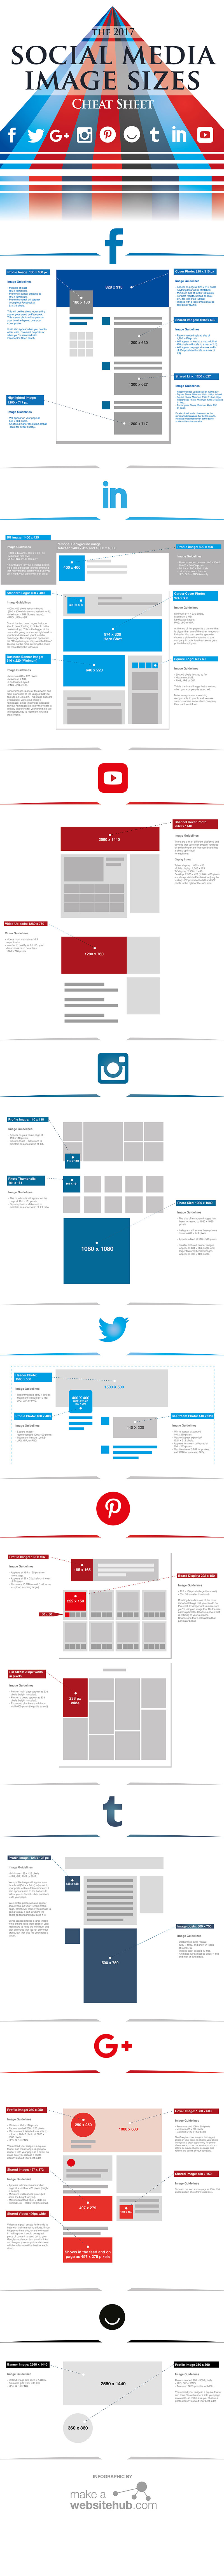 social media image sizes 2017 cheat sheet infographic The Ultimate Social Media Image Sizes Cheat Sheet for 2017 [Infographic]